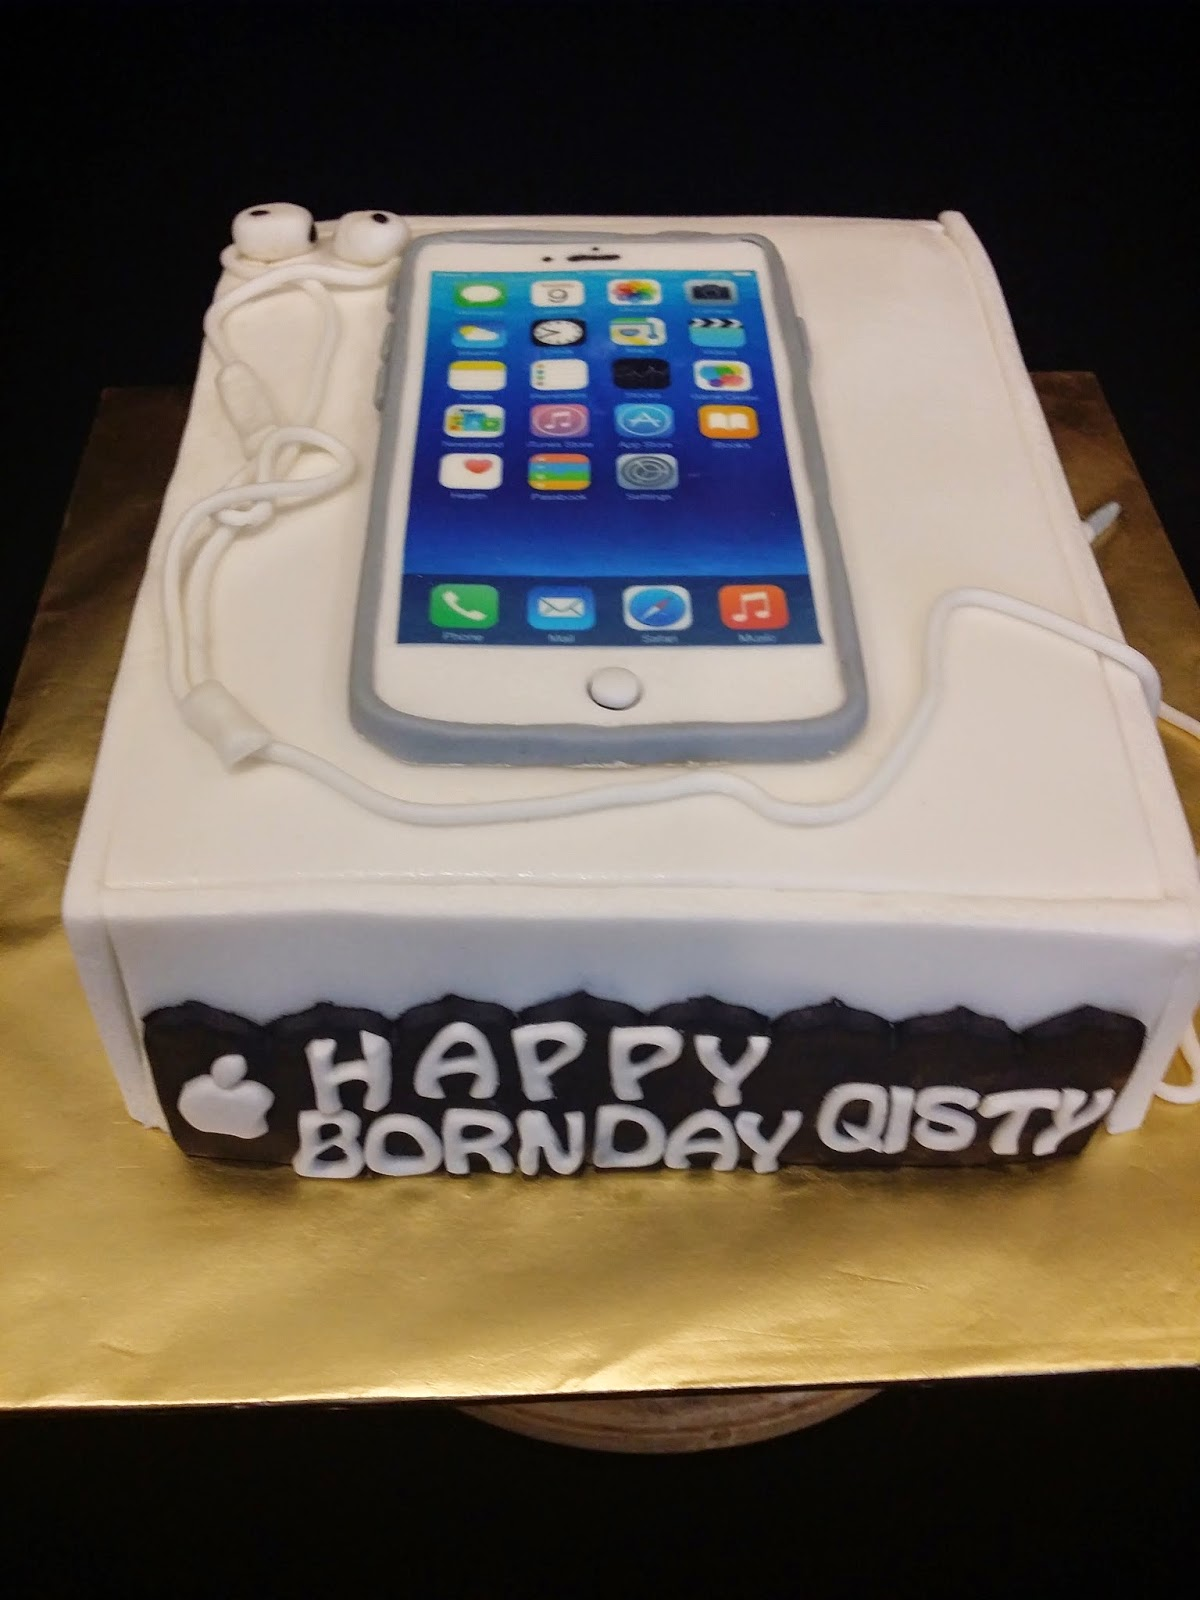 Sweet Creations Iphone 6 Cake For Qisty